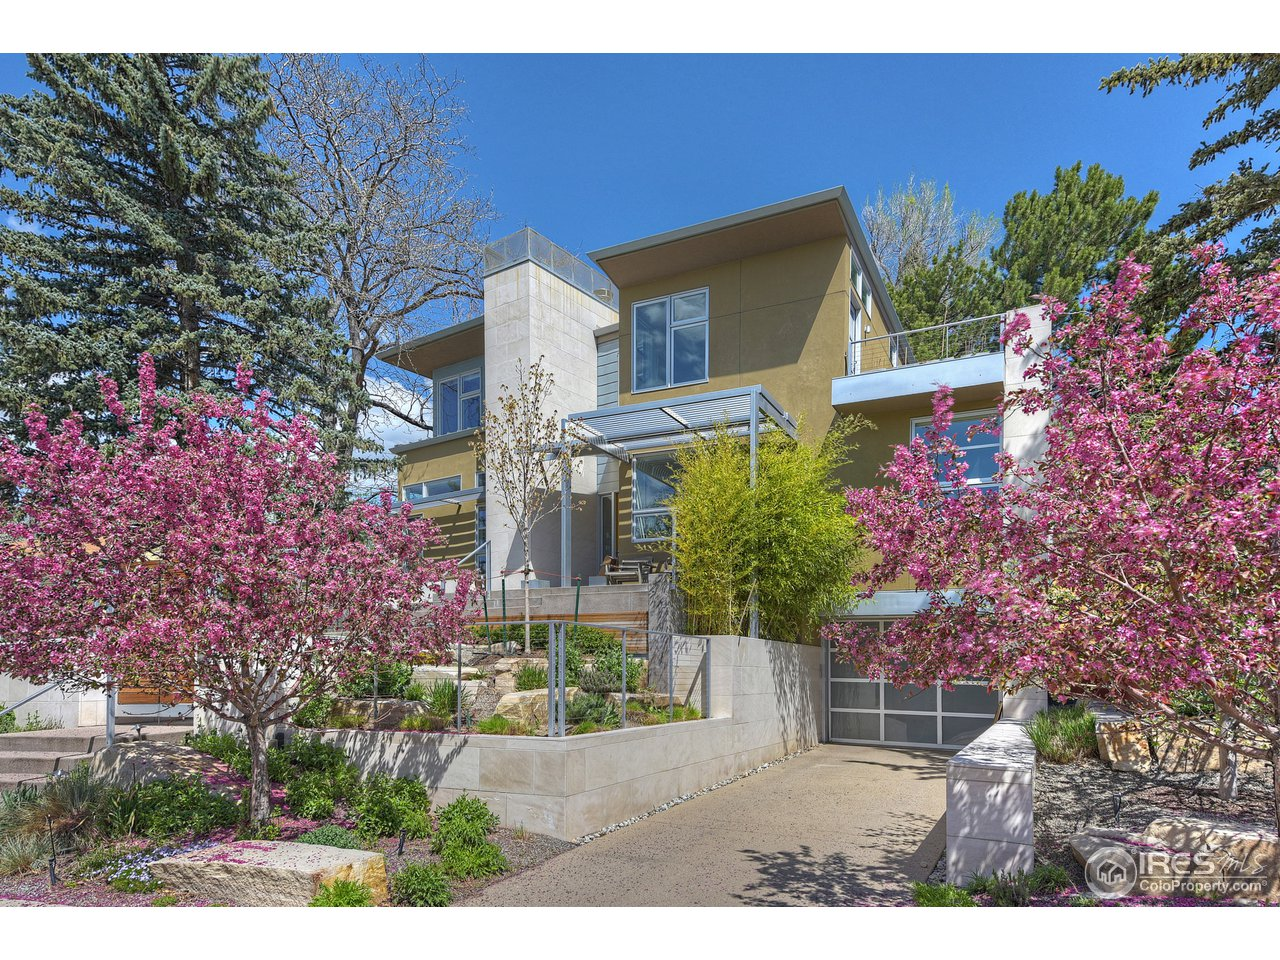 2325 Panorama Ave, Boulder CO 80304